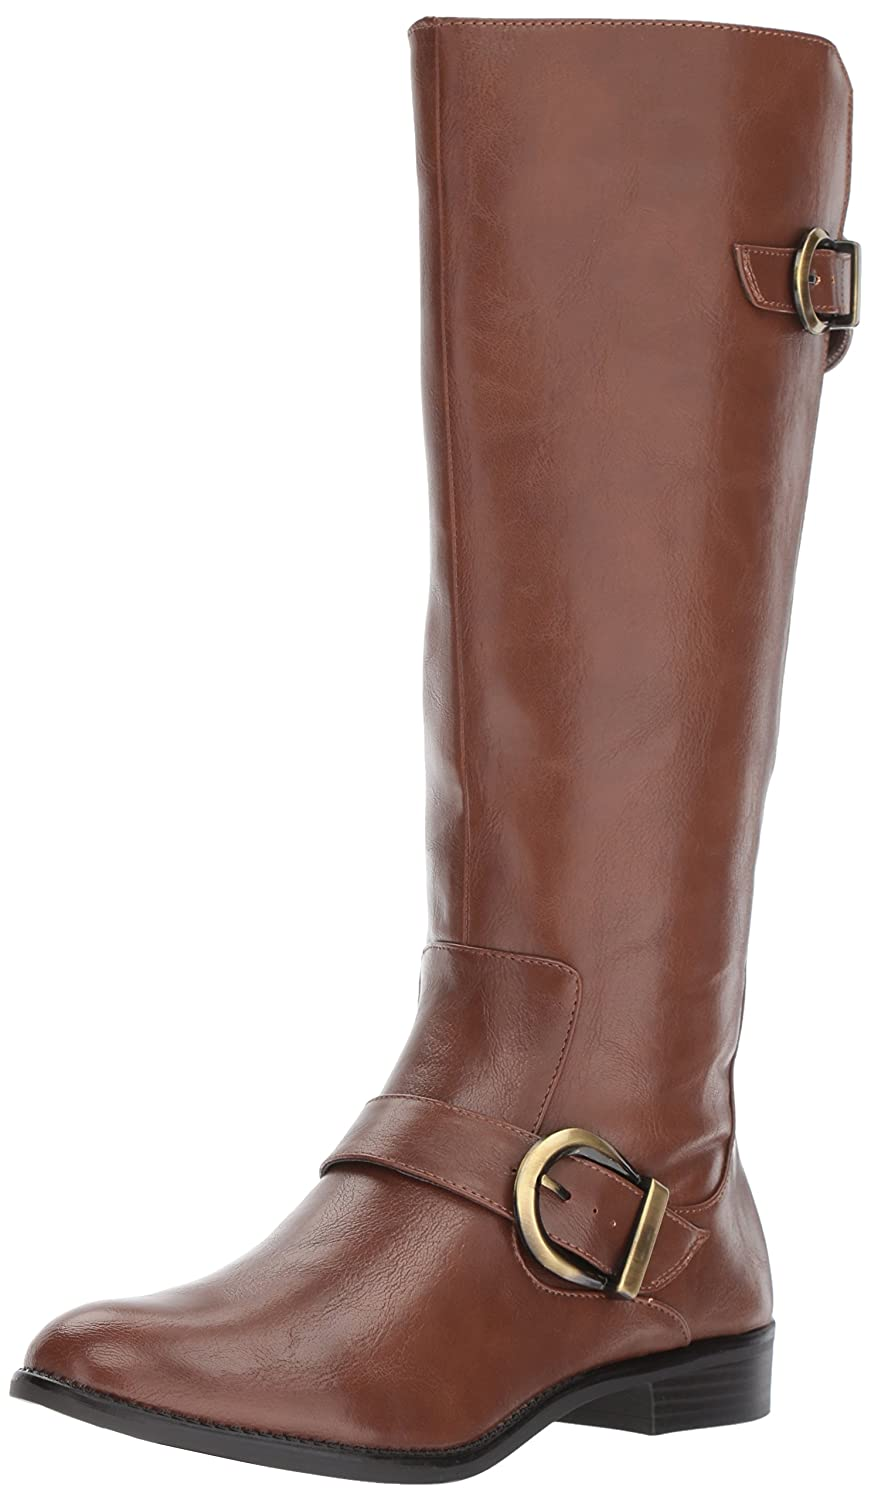 LifeStride Womens Rosaria Wide Calf Closed Toe Fashion Boots B074XDJVKM 7.5 C/D US|ダークタン ダークタン 7.5 C/D US